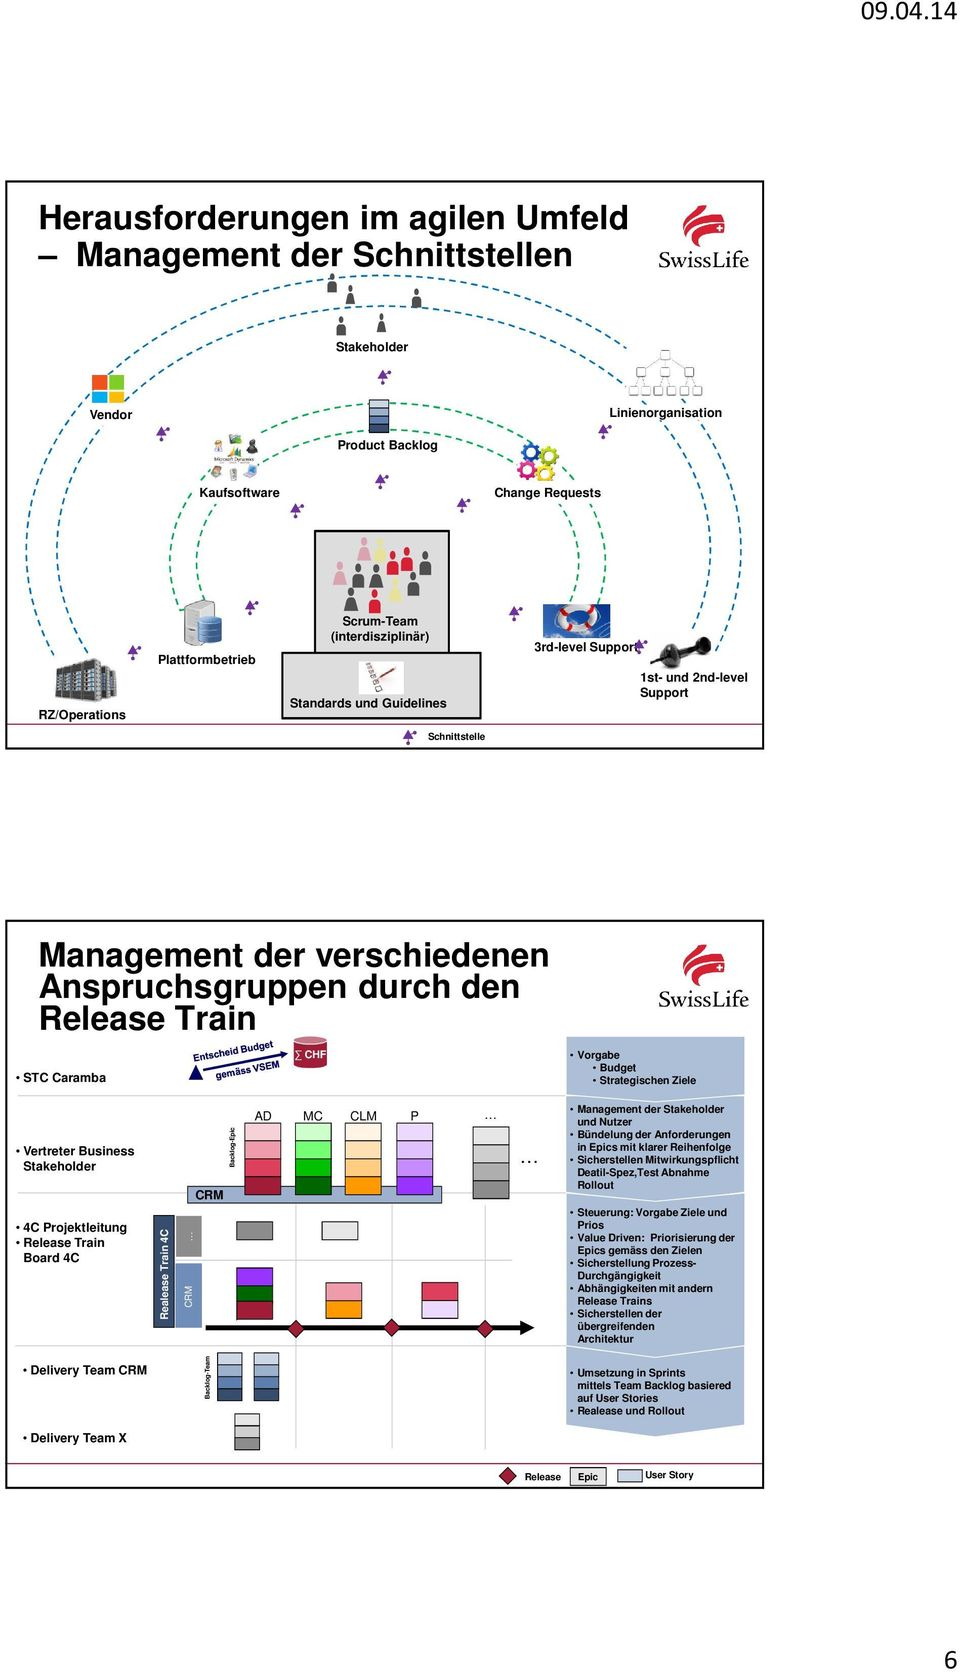 Budget Strategischen Ziele Vertreter Business Stakeholder 4C Projektleitung Release Train Board 4C Realease Train 4C CRM CRM Backlog-Epic AD MC CLM P Management der Stakeholder und Nutzer Bündelung